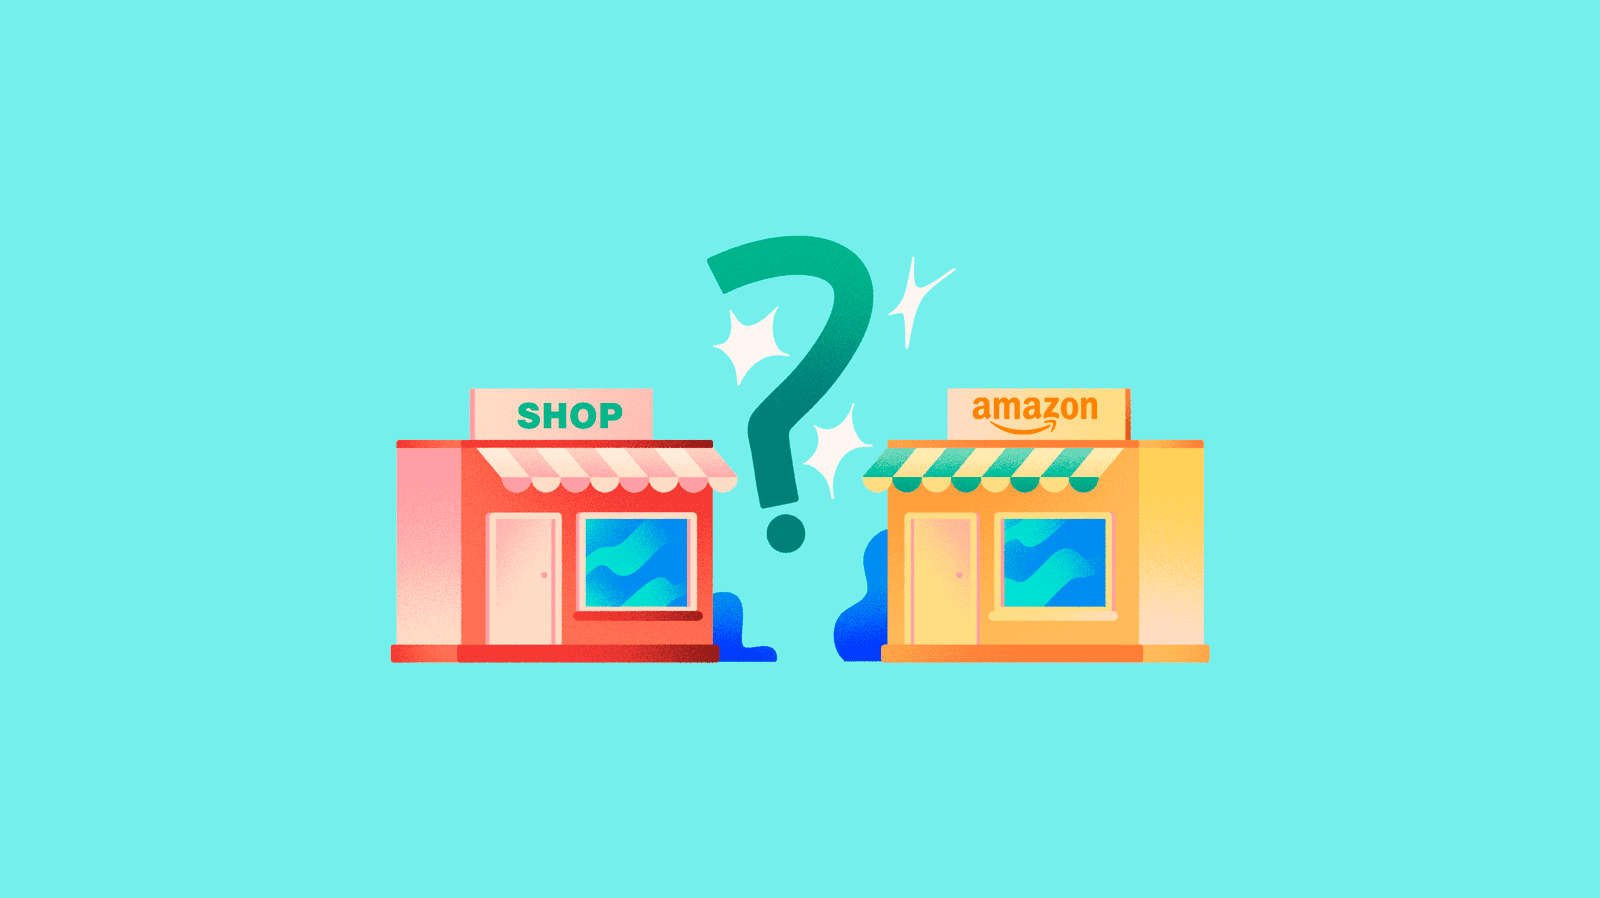 A physical shop and an Amazon shop with an interrogation mark